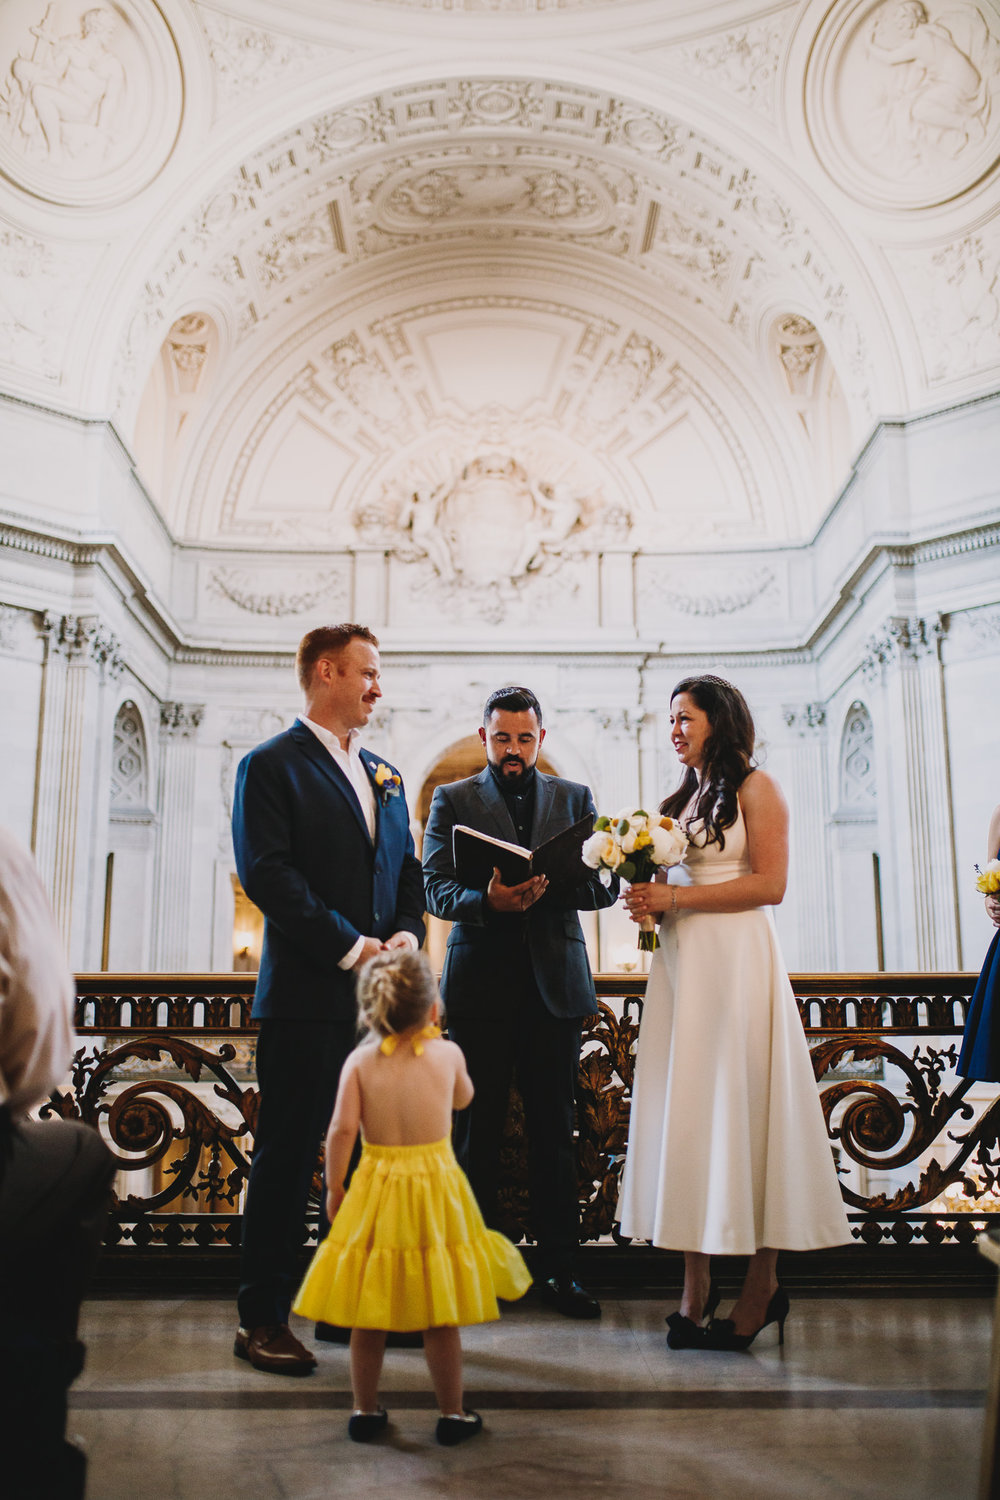 Archer Inspired Photography SF City Hall Elopement Wedding Lifestyle Documentary Affordable Photographer-70.jpg